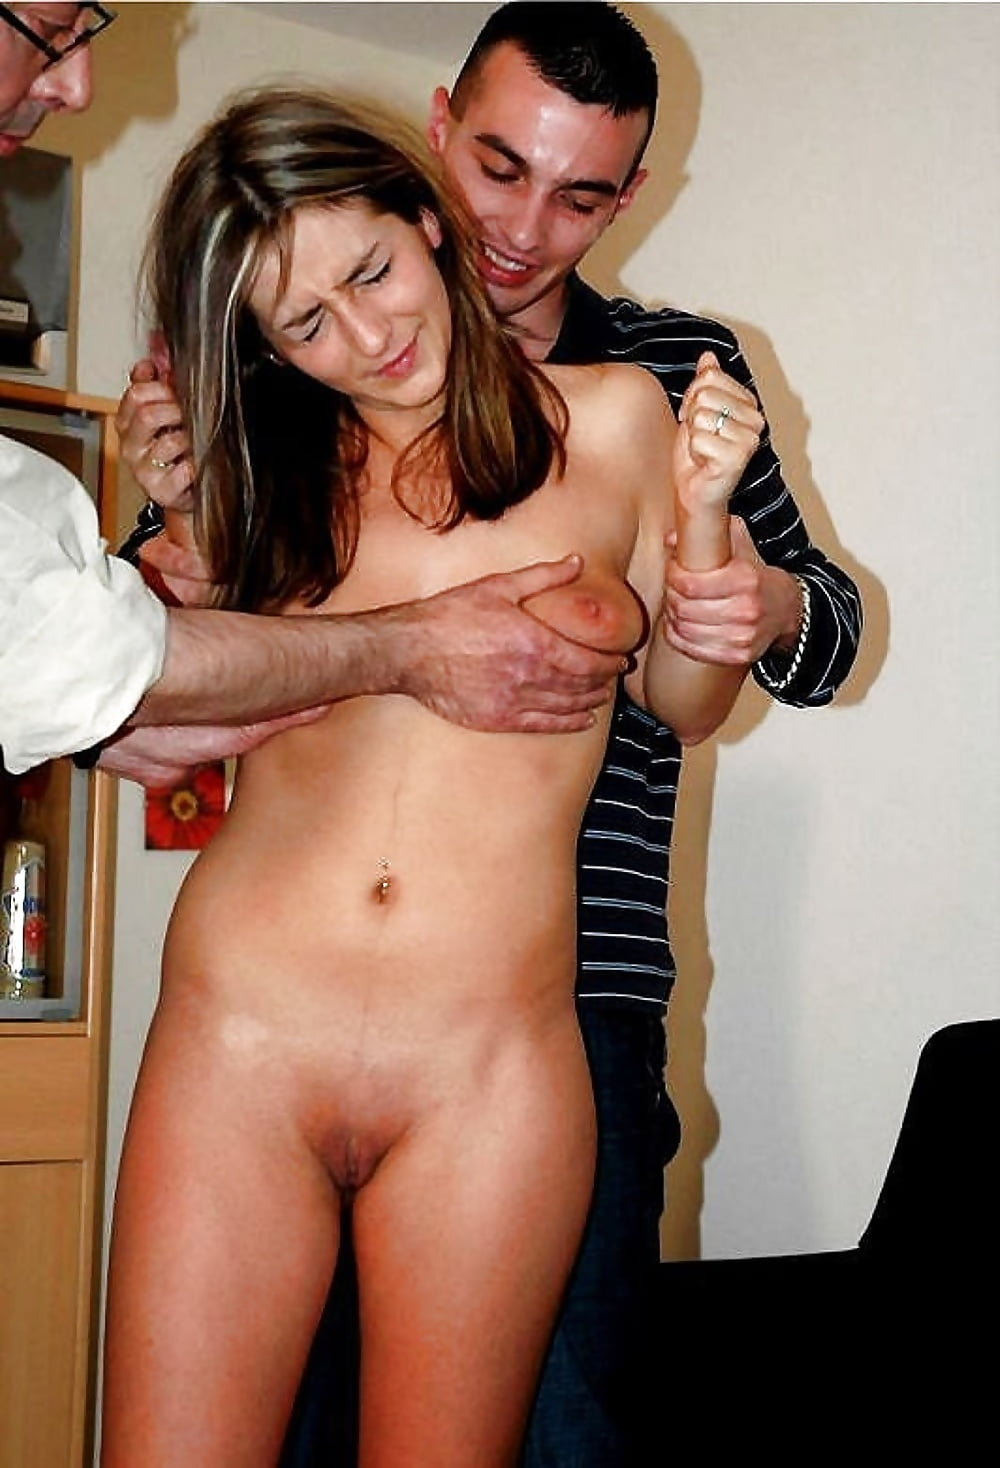 embarrassed-sex-act-stories-goldwing-tranny-gone